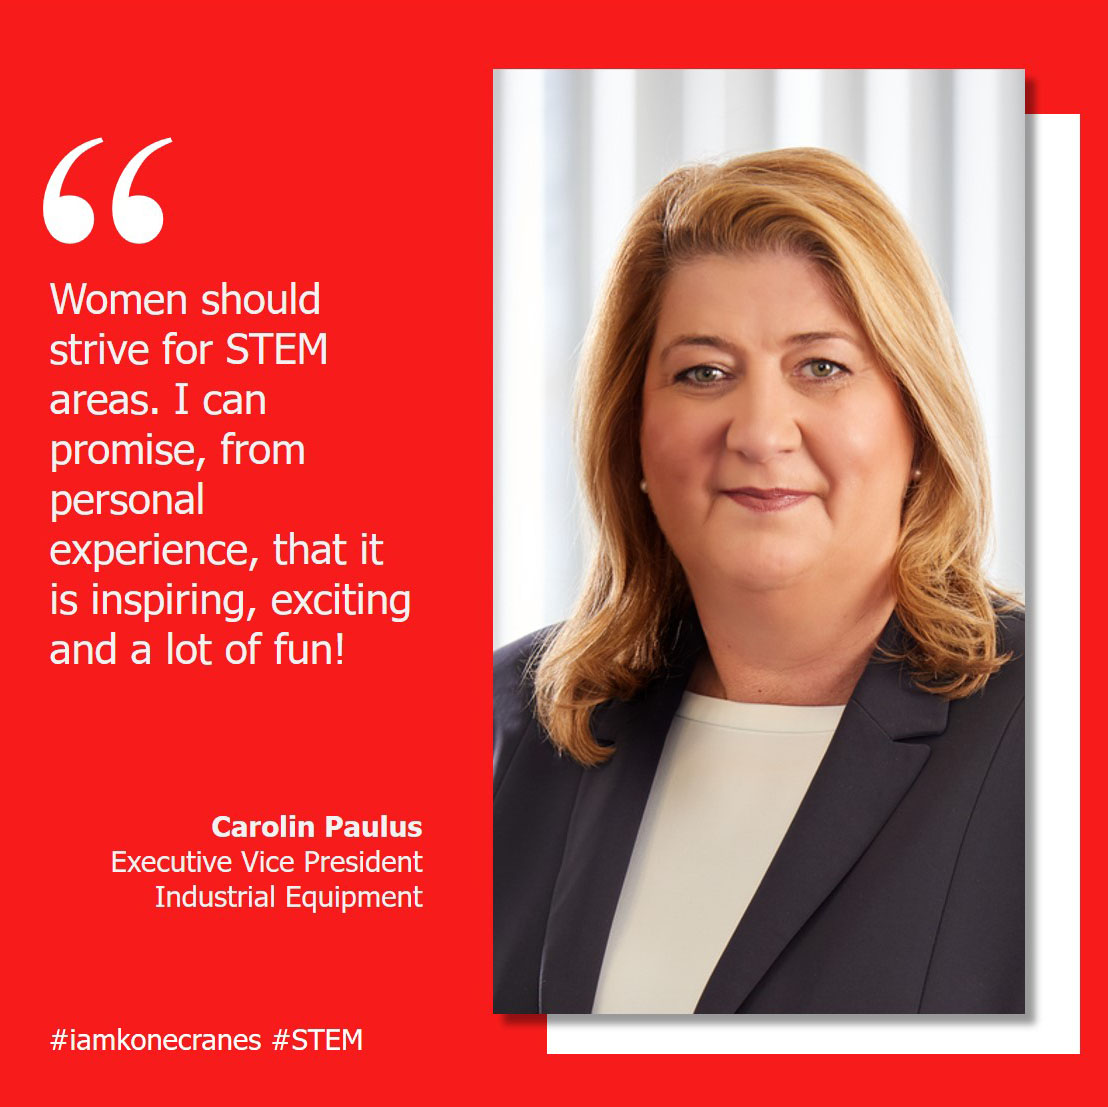 When our EVP for Industrial Equipment Carolin Paulus took her first management position, it was unusual to see woman in that role. That didn't stop her – and neither should it stop young girls today from pursuing their dreams. ❤️ #iamkonecranes #STEM #ALD2020 https://t.co/yjMP4Sr9ss